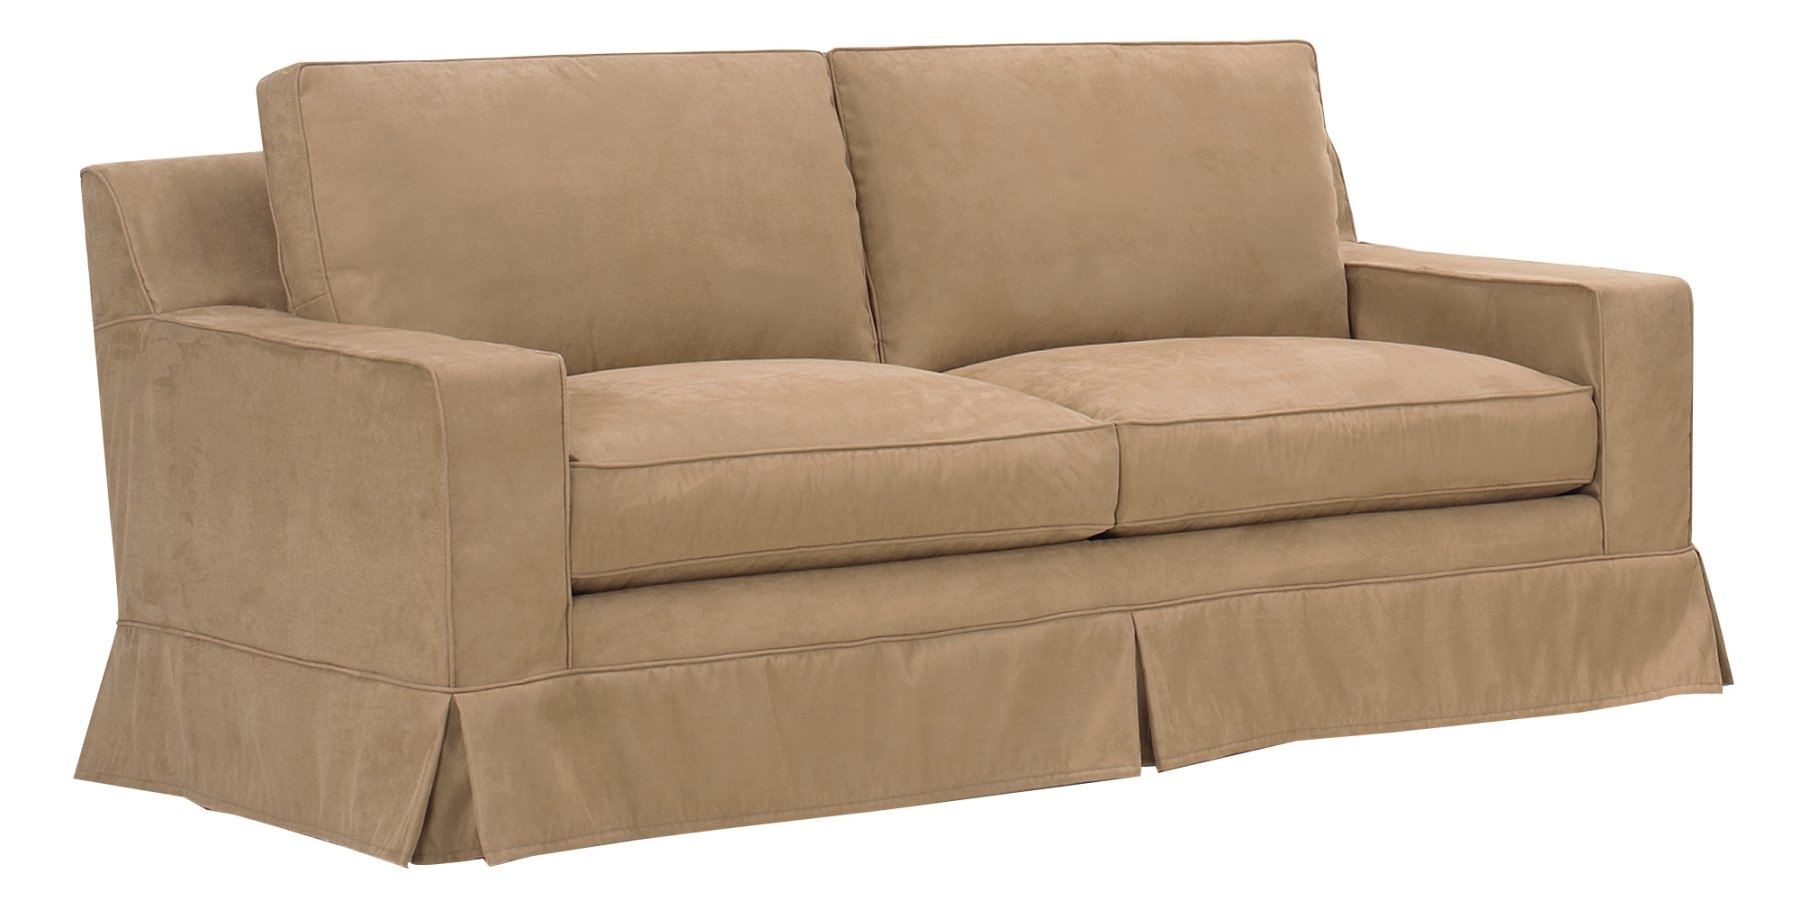 Slipcover Sleeper Sofa With Down Filled Couch Cushions With Regard To Down Filled Sofas (View 9 of 15)